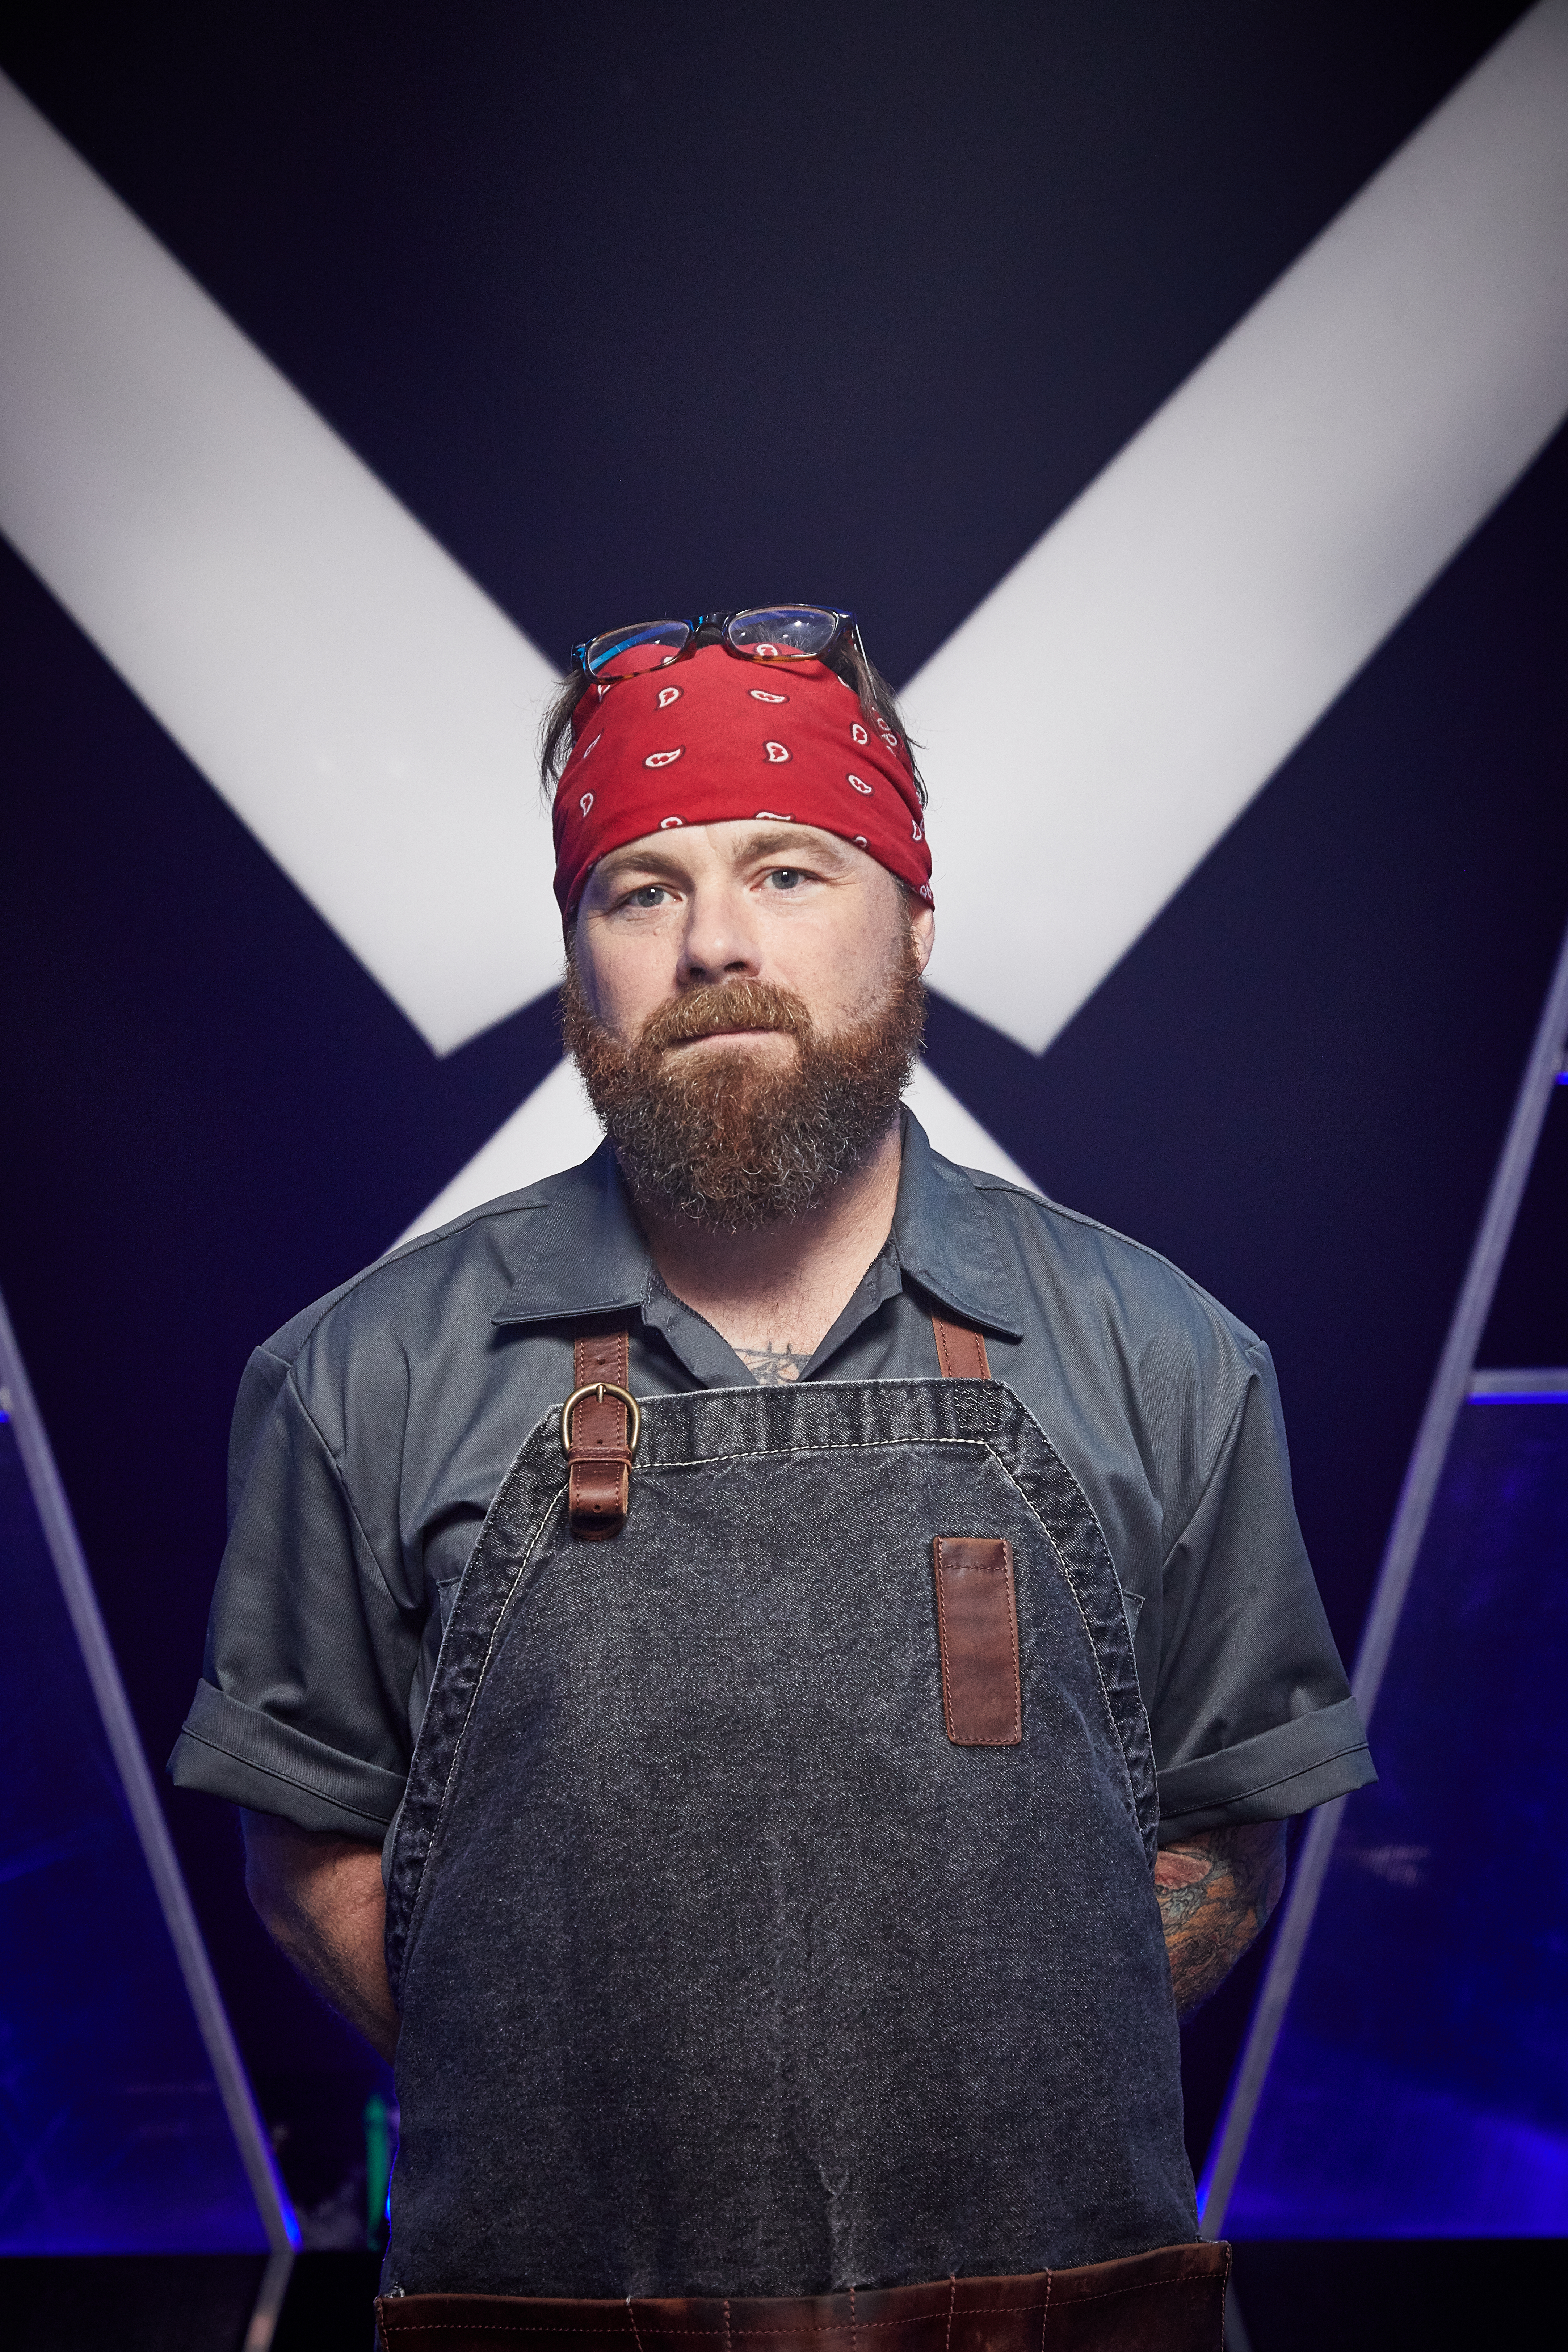 Plateau Chef Wins 'Iron Chef Canada' With Tex-Mex Goat Dishes